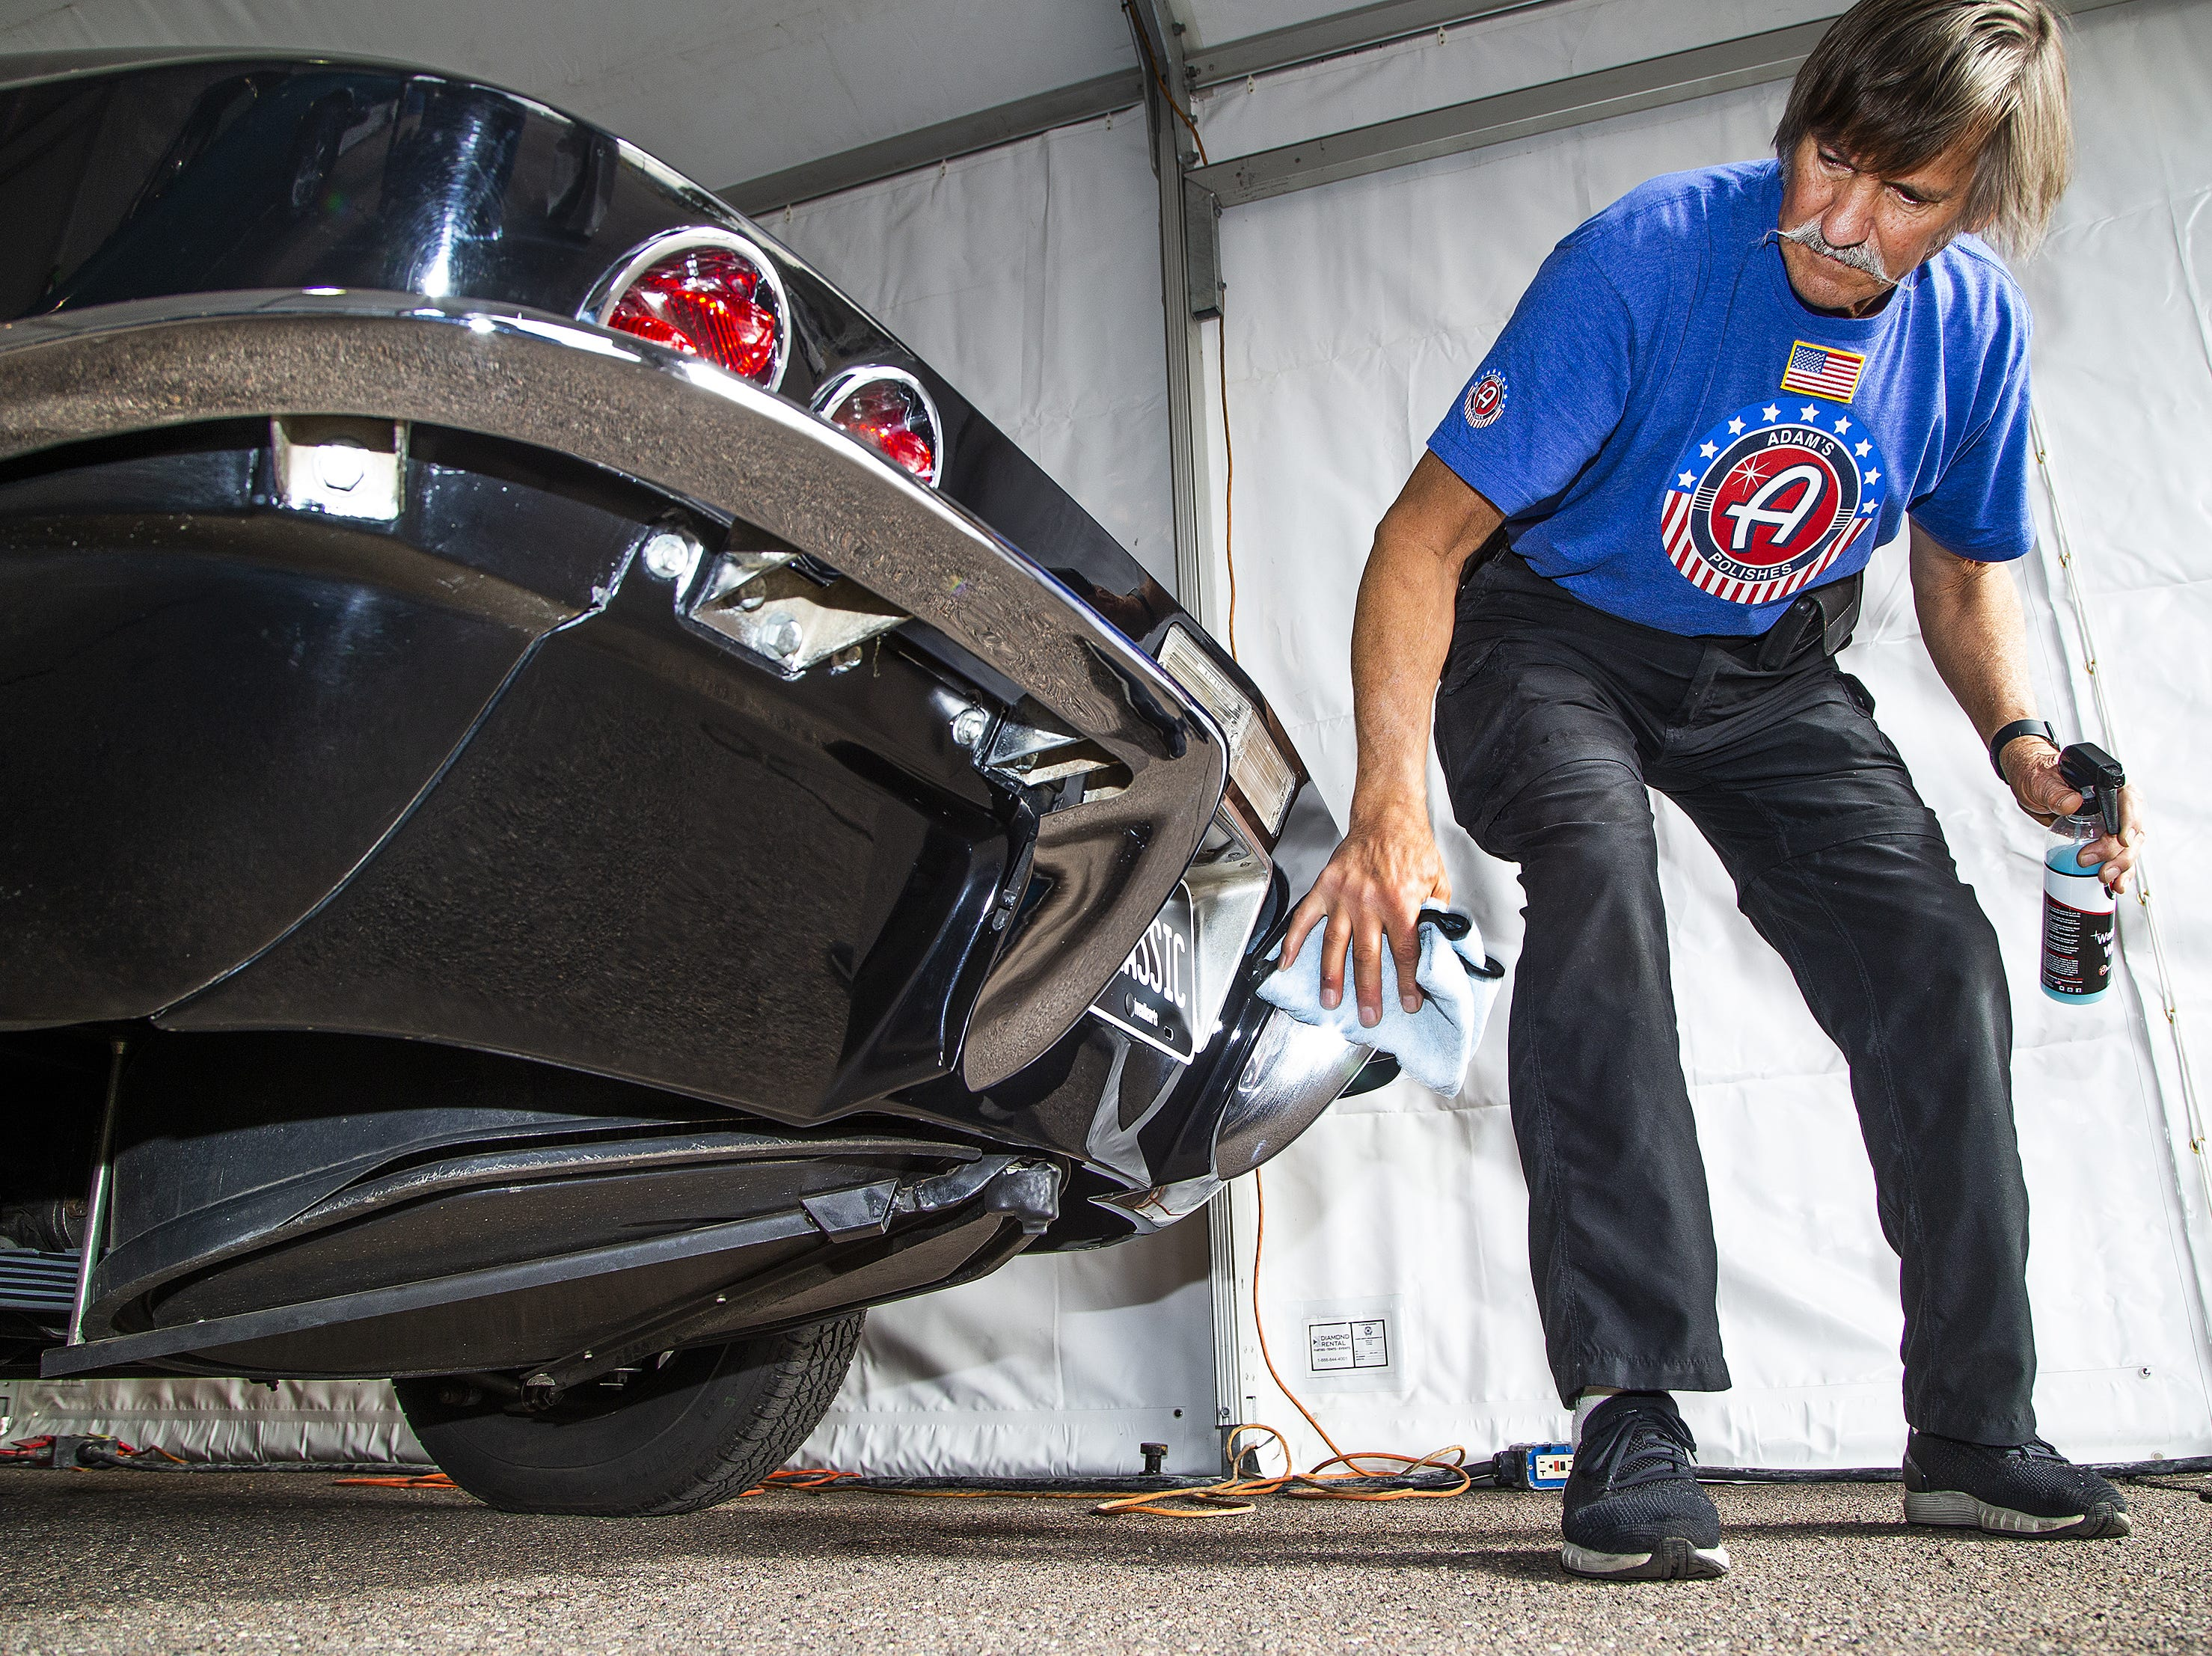 Detailer Greg Mirich wipes down a 1967 427 Corvette Stingray convertible in preparation for the 48th Annual Barrett-Jackson Scottsdale Collector Car Auction at WestWorld that runs from January 12-20, 2019.